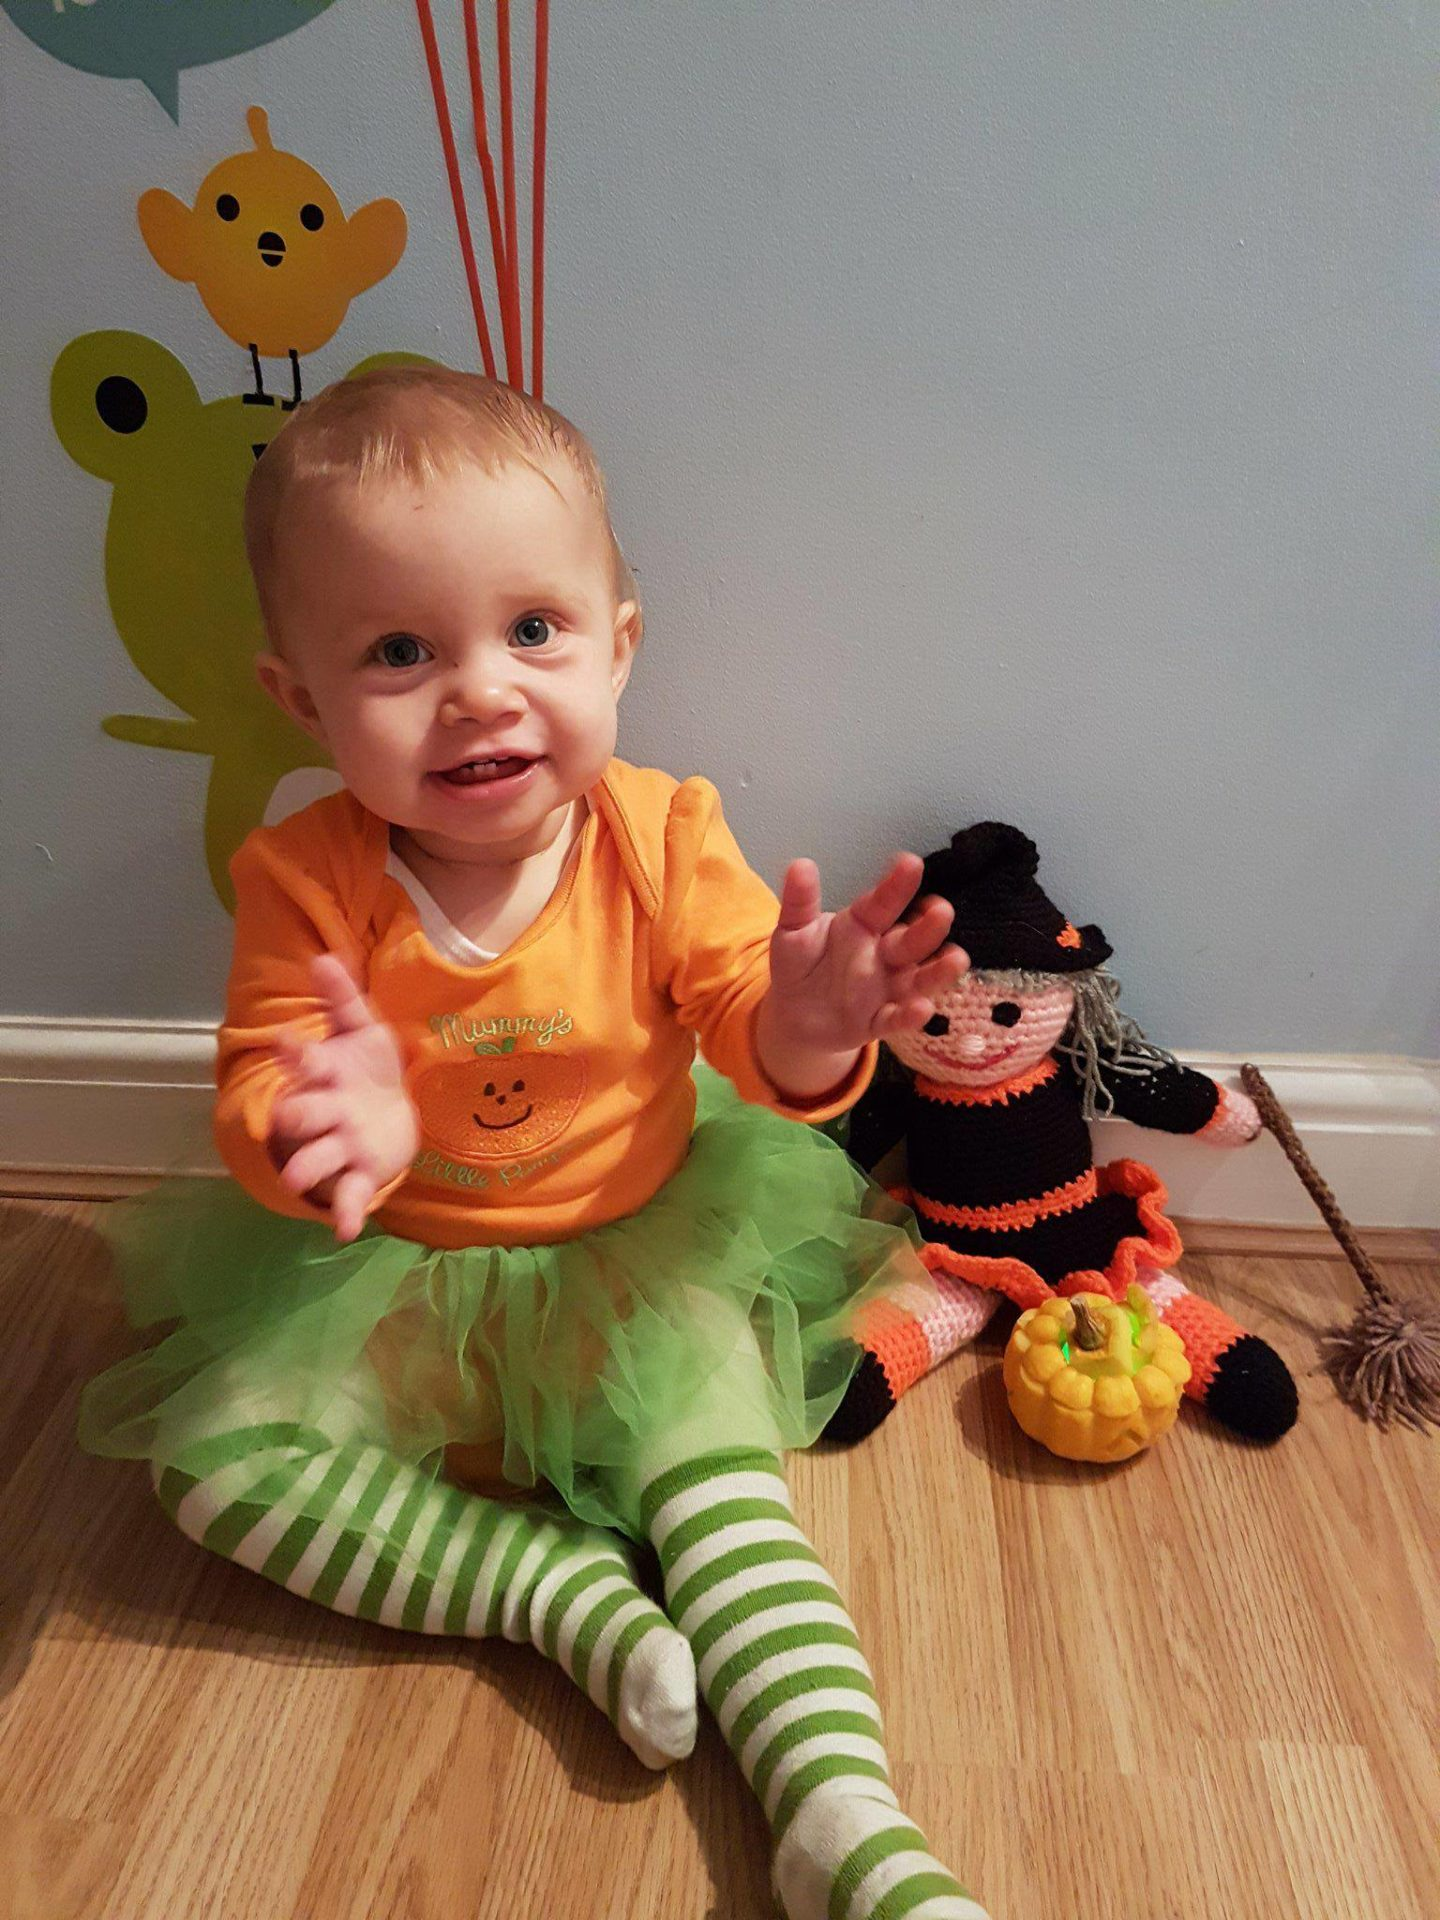 George Asda Mummy's Little Pumpkin Outfit